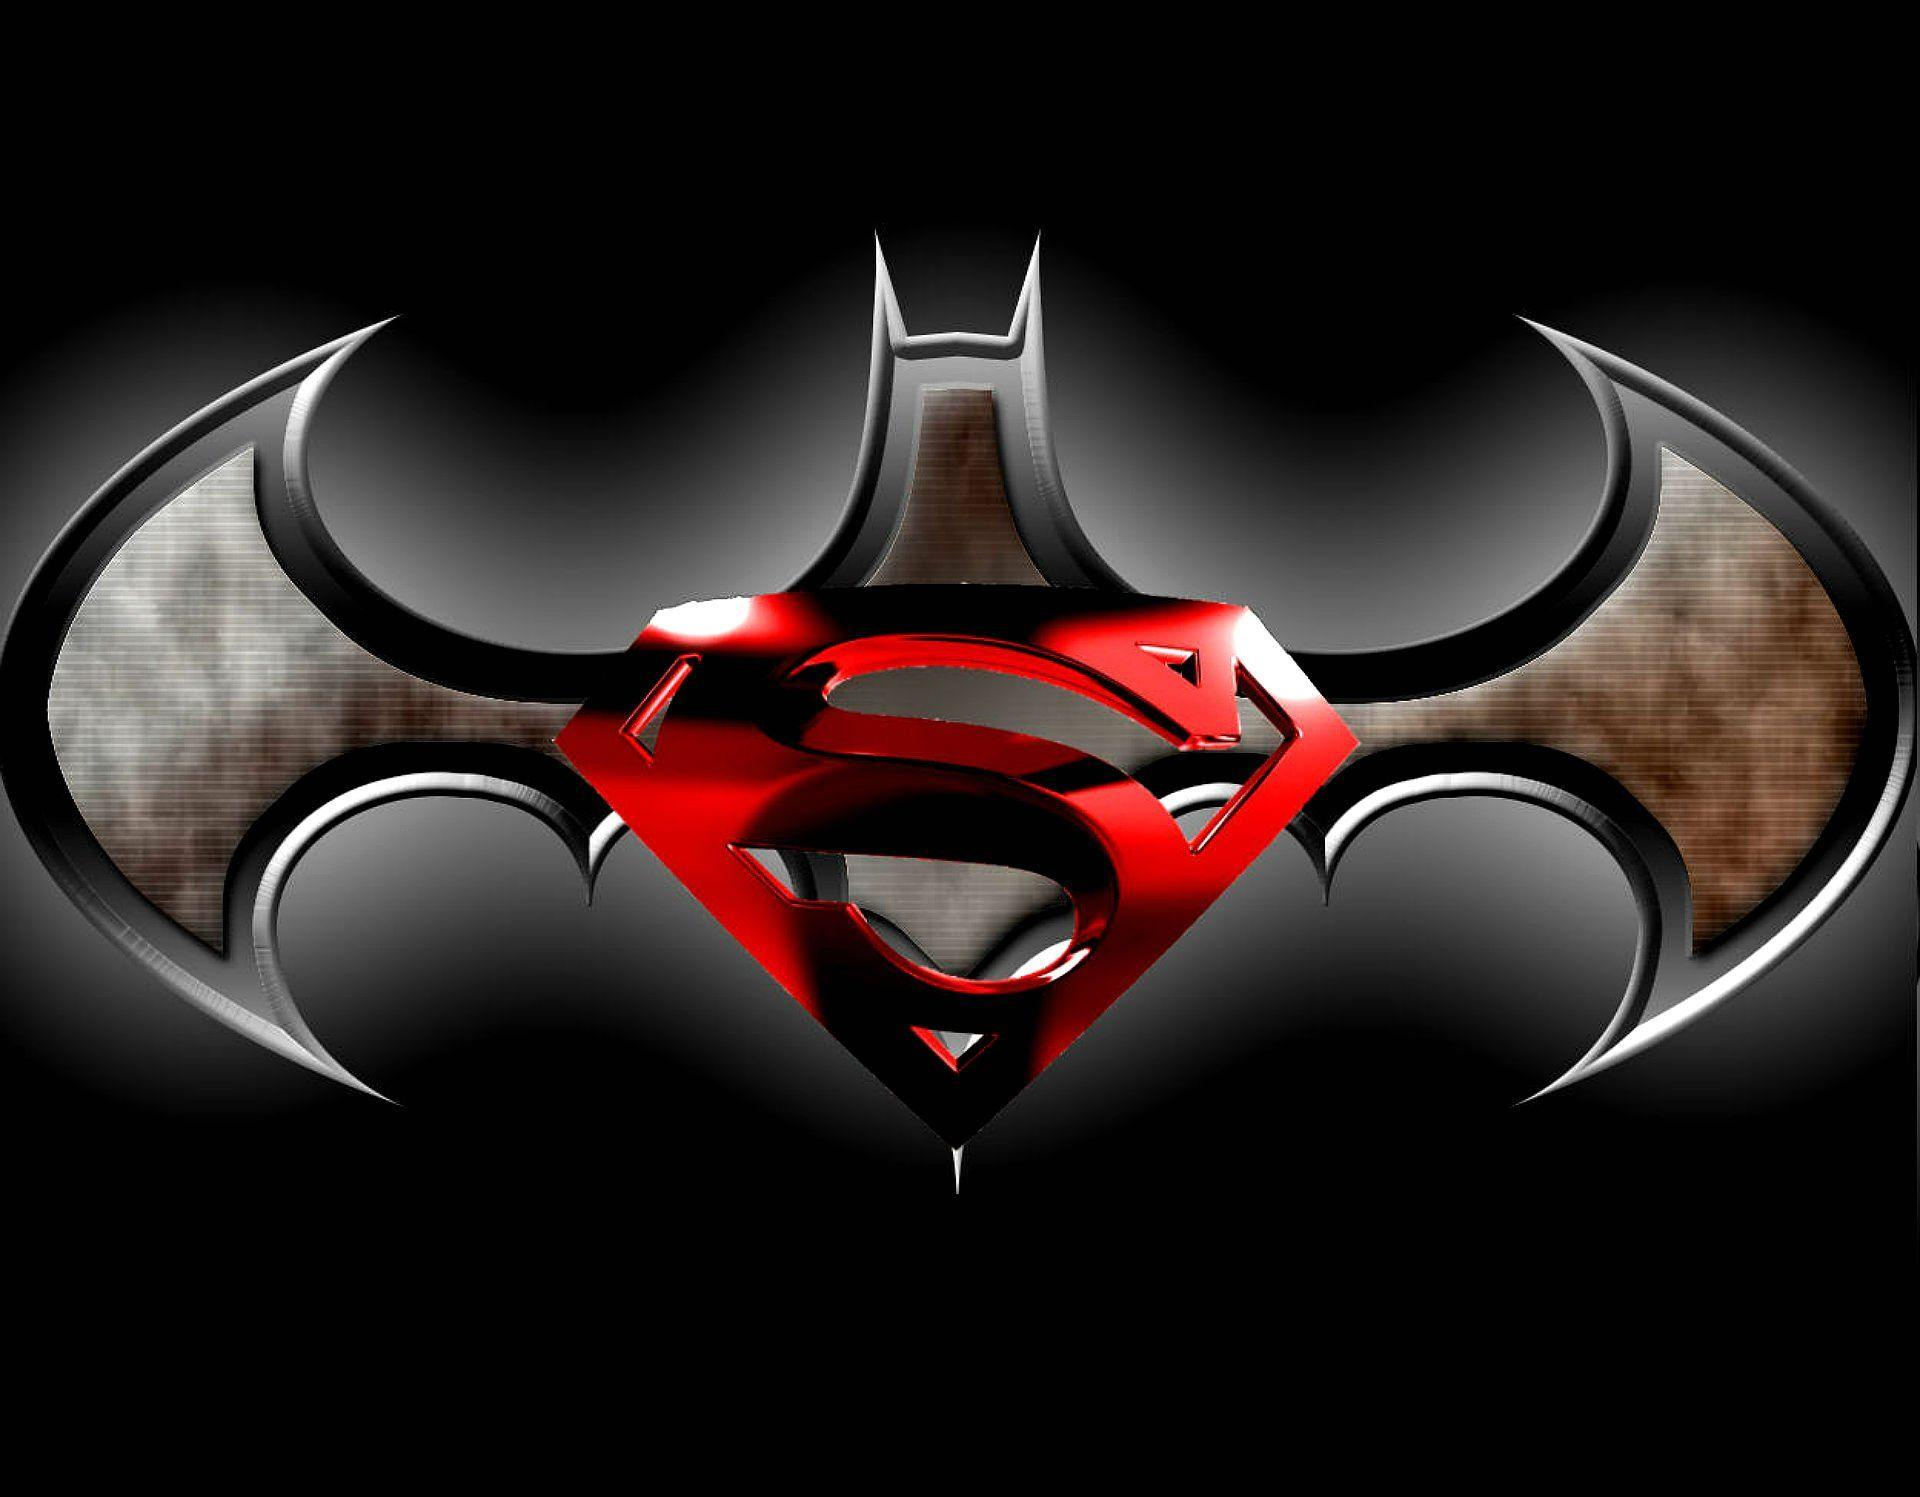 Batman vs superman logo wallpapers wallpaper cave - Superman screensaver ...